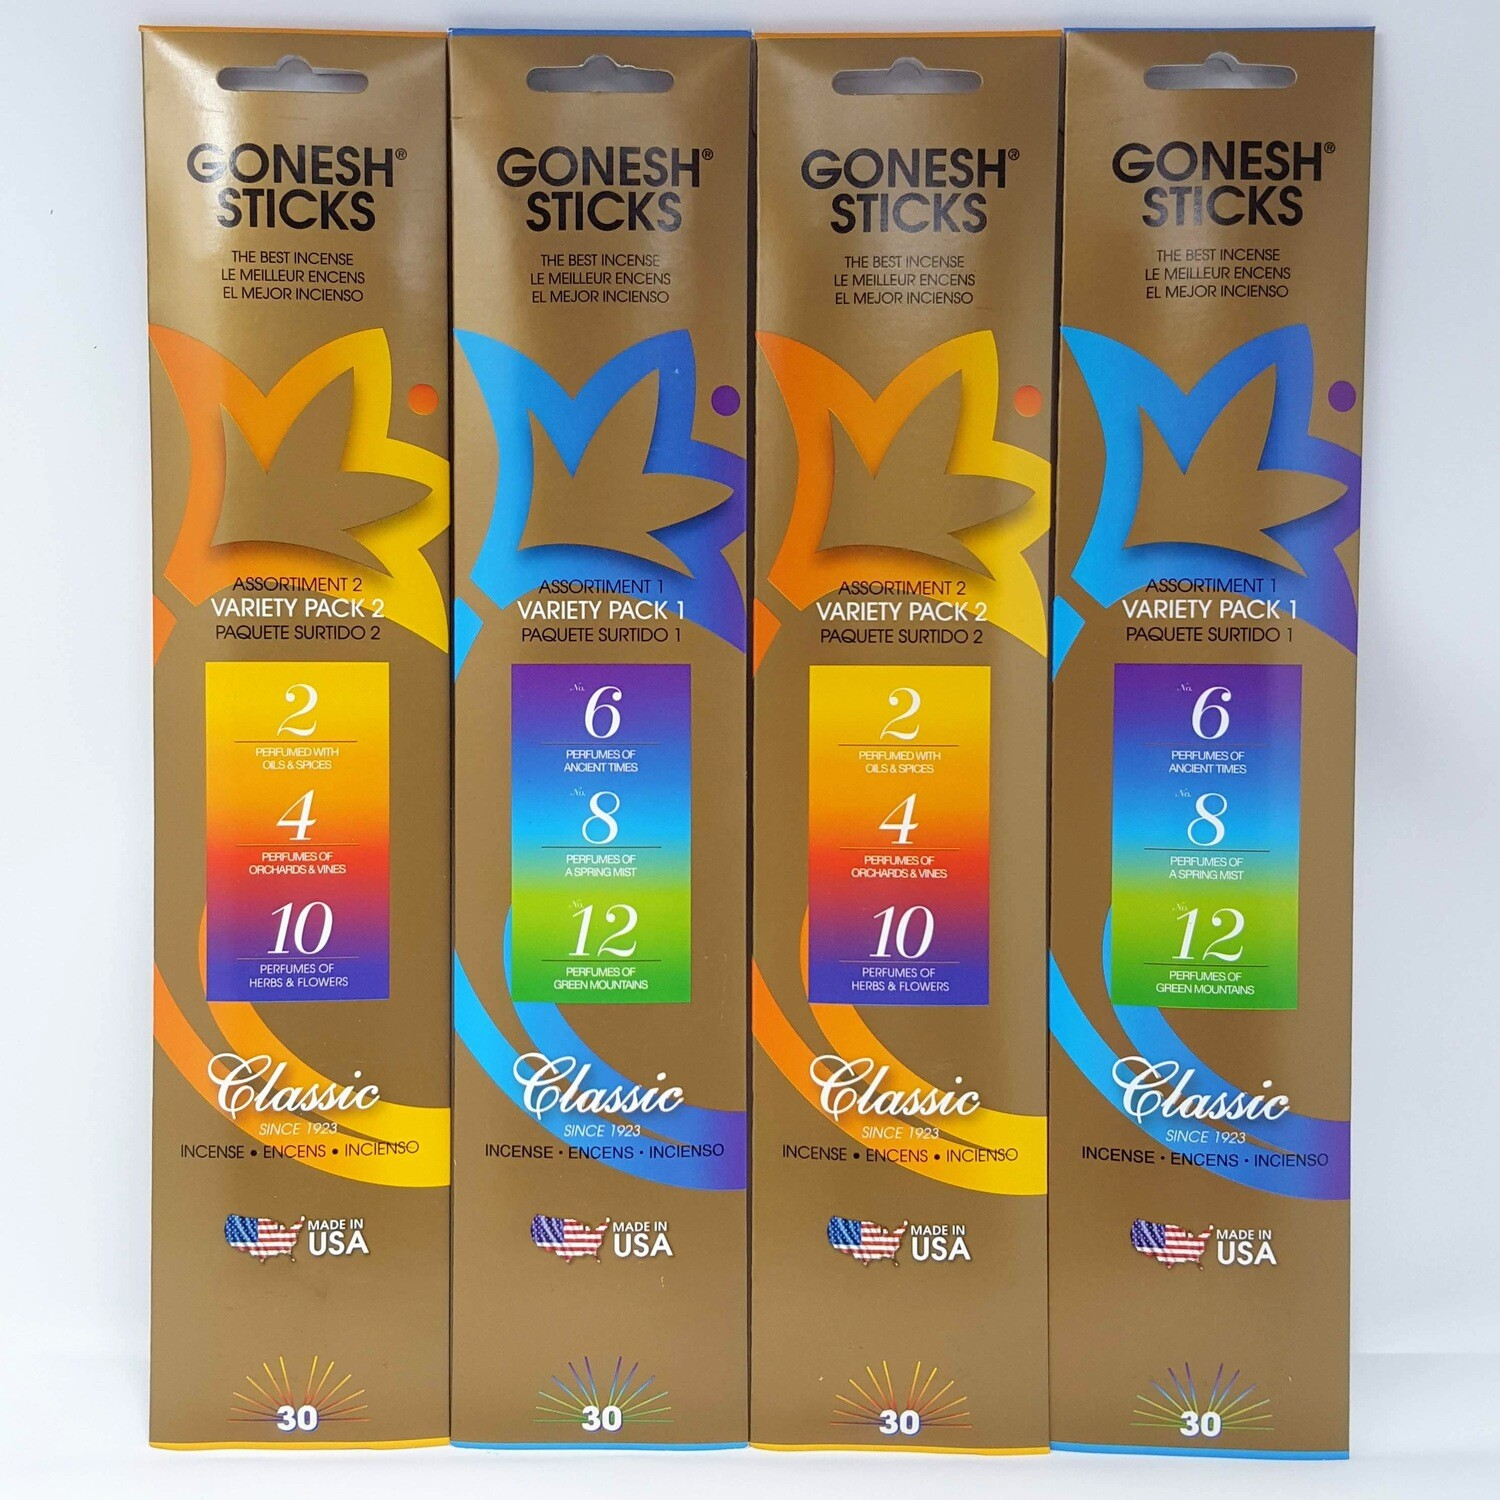 GONESH VARIETY PACKS